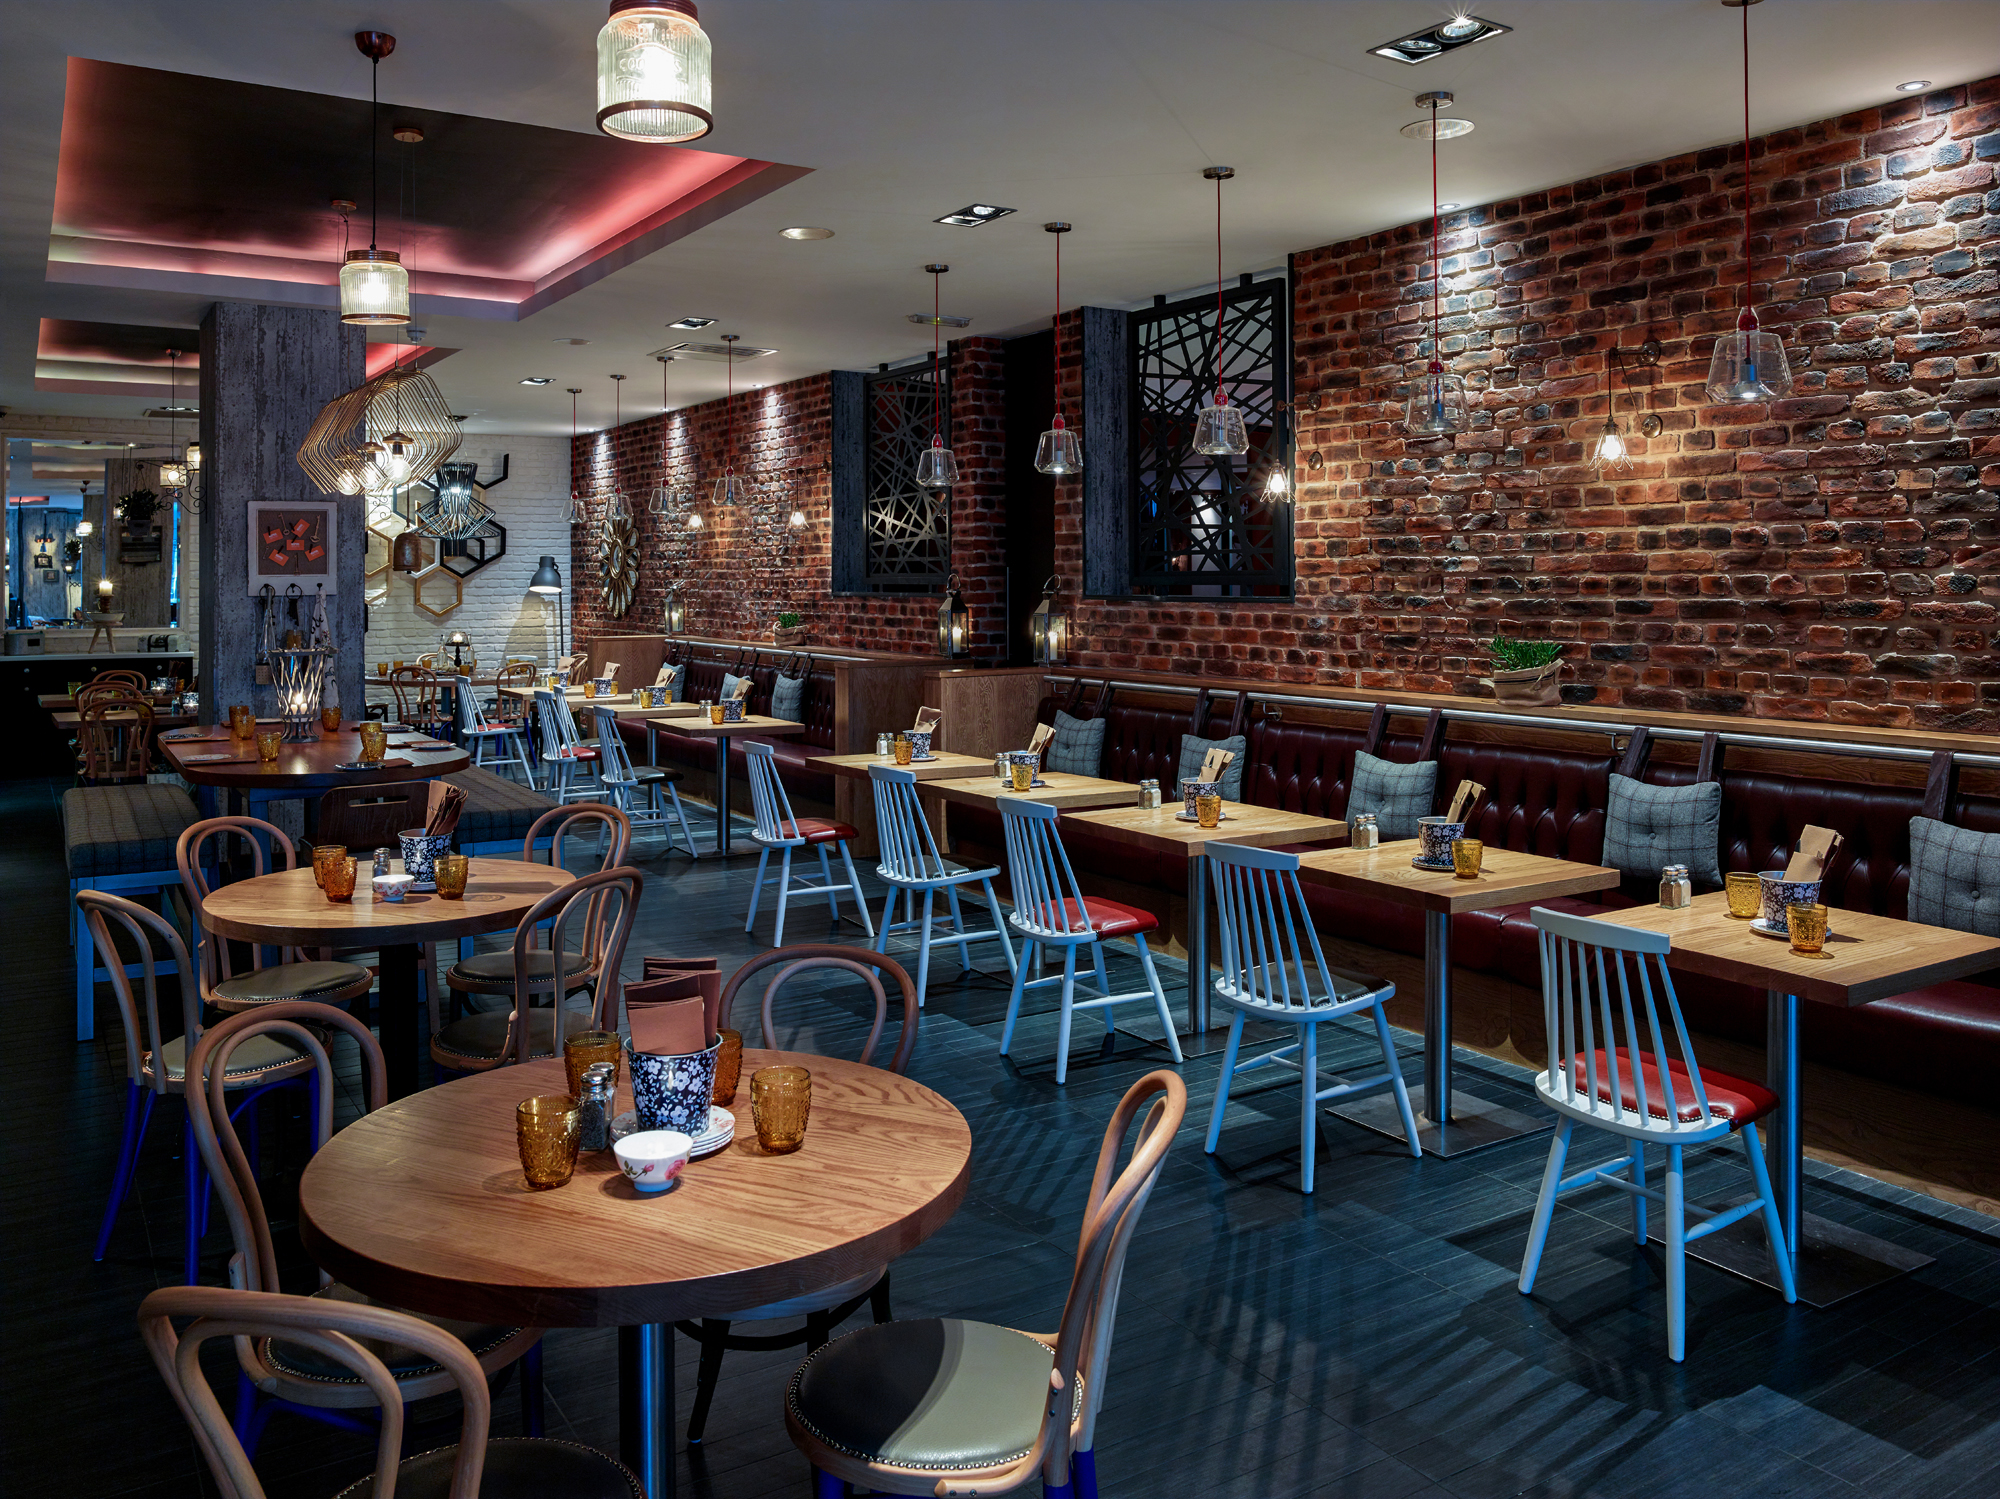 London-Brick-Multi-And-White-In-Restaurant-Of-Hotel-Near-Tower-Bridge-London (5)